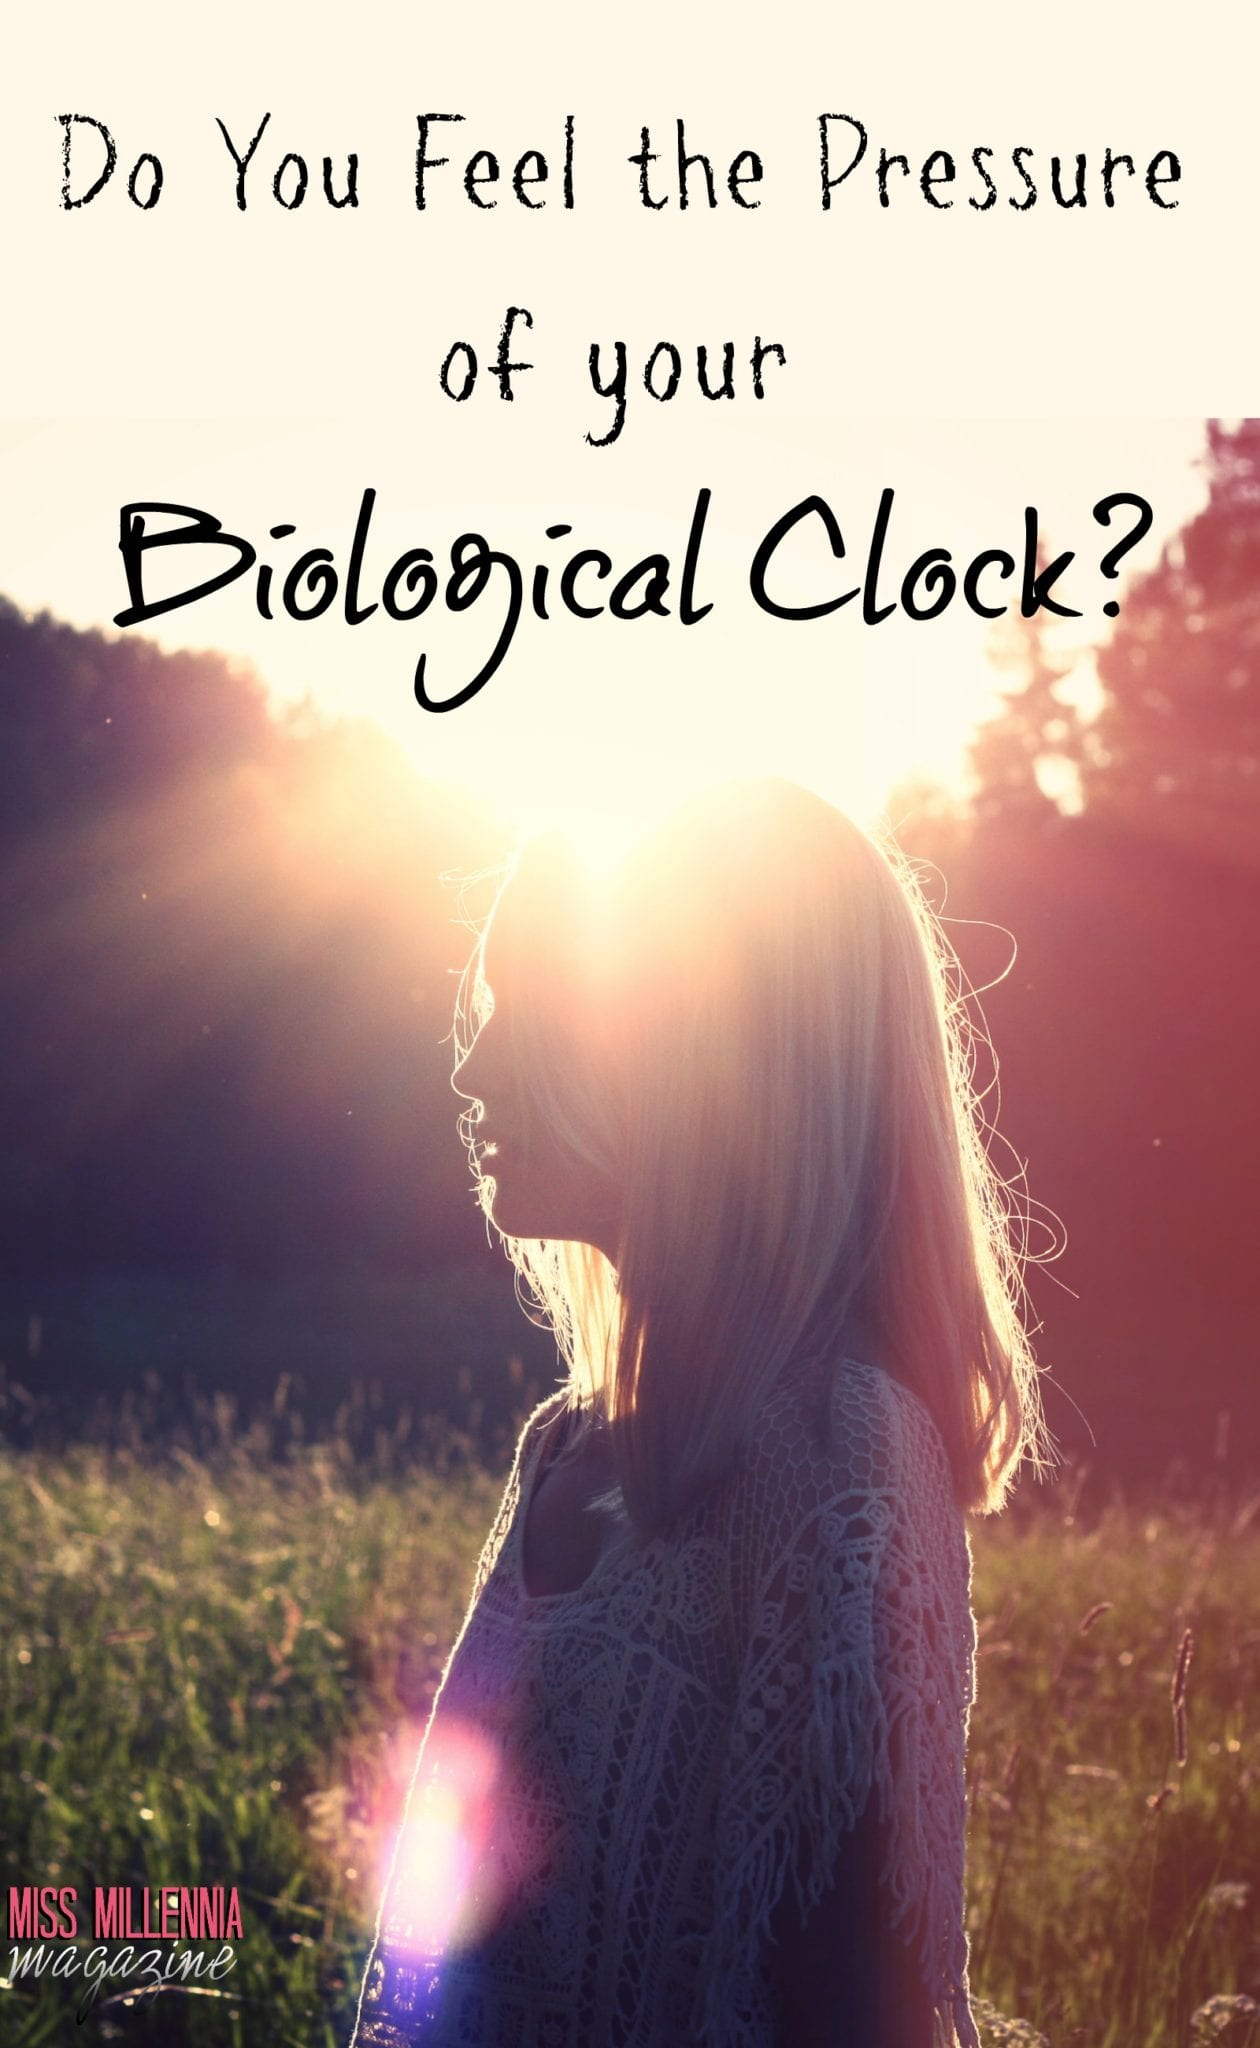 do-you-feel-the-pressure-of-your-biological-clock